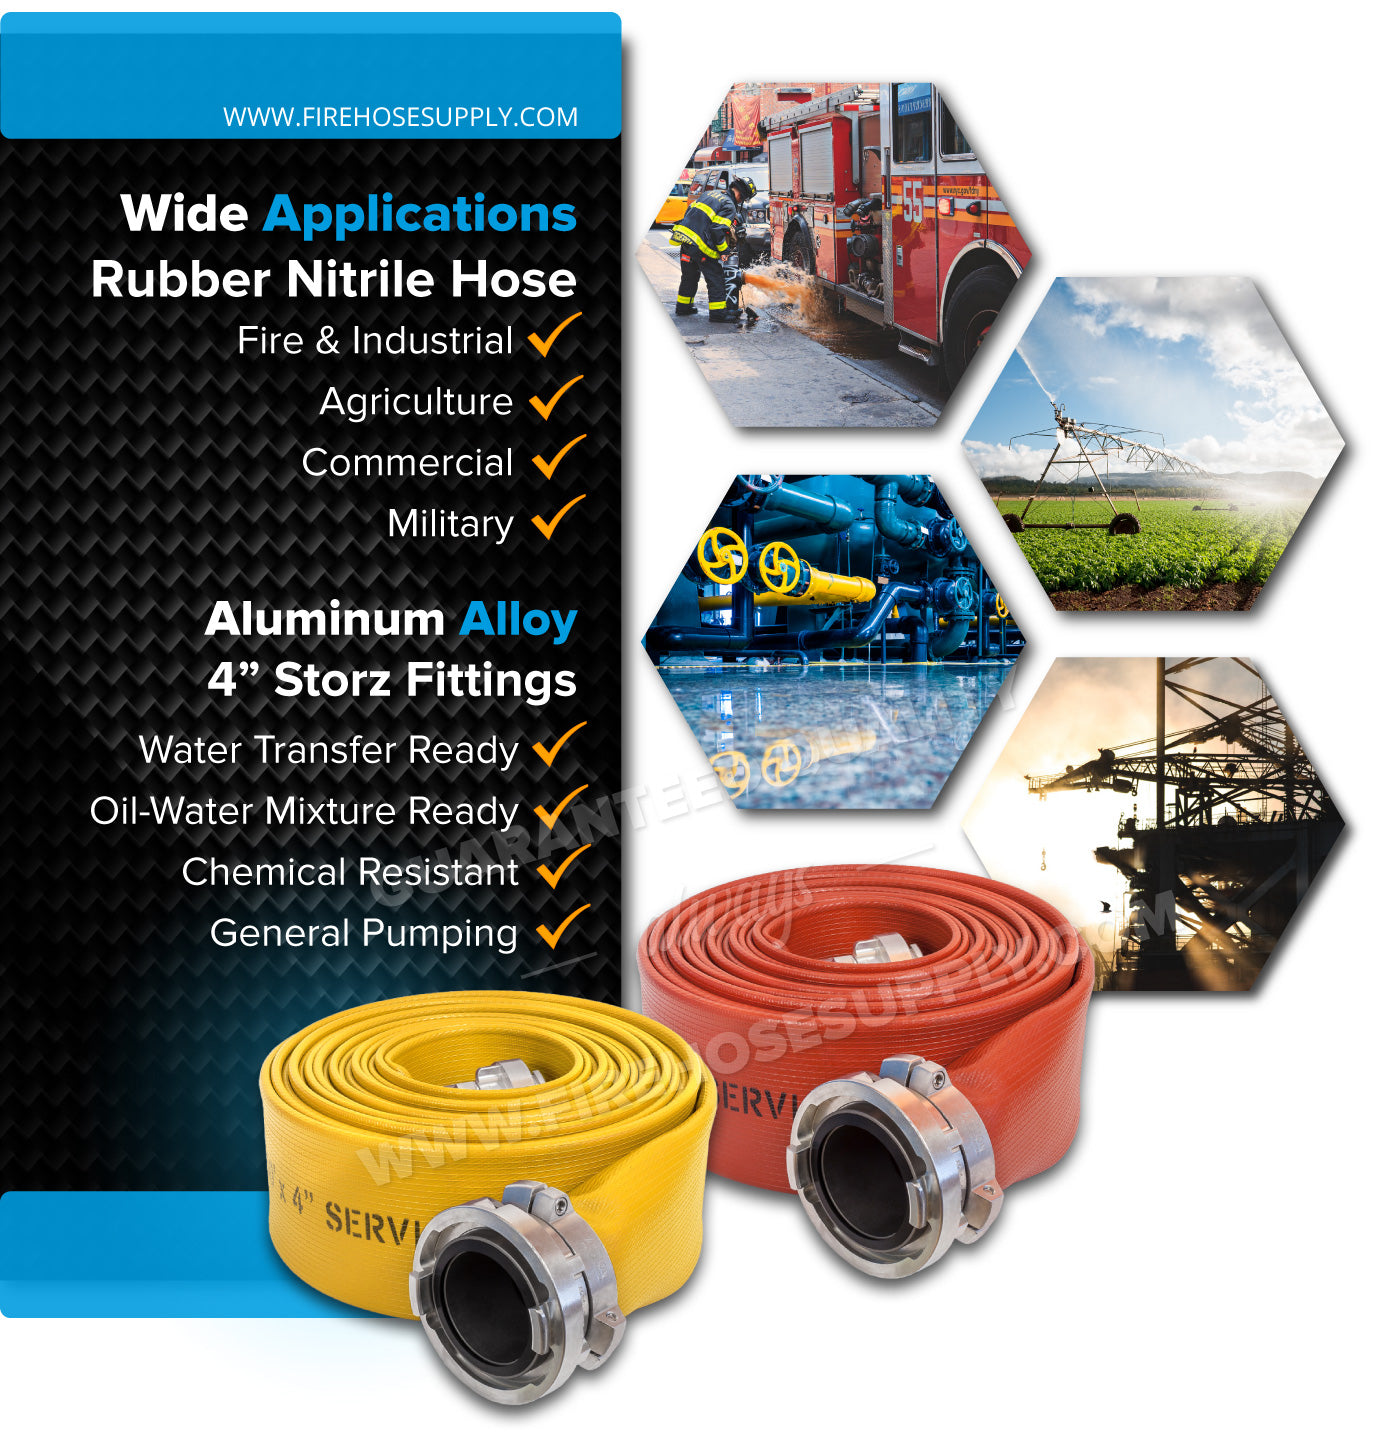 4 Inch Fire Hose Rubber Storz Industrial Applications